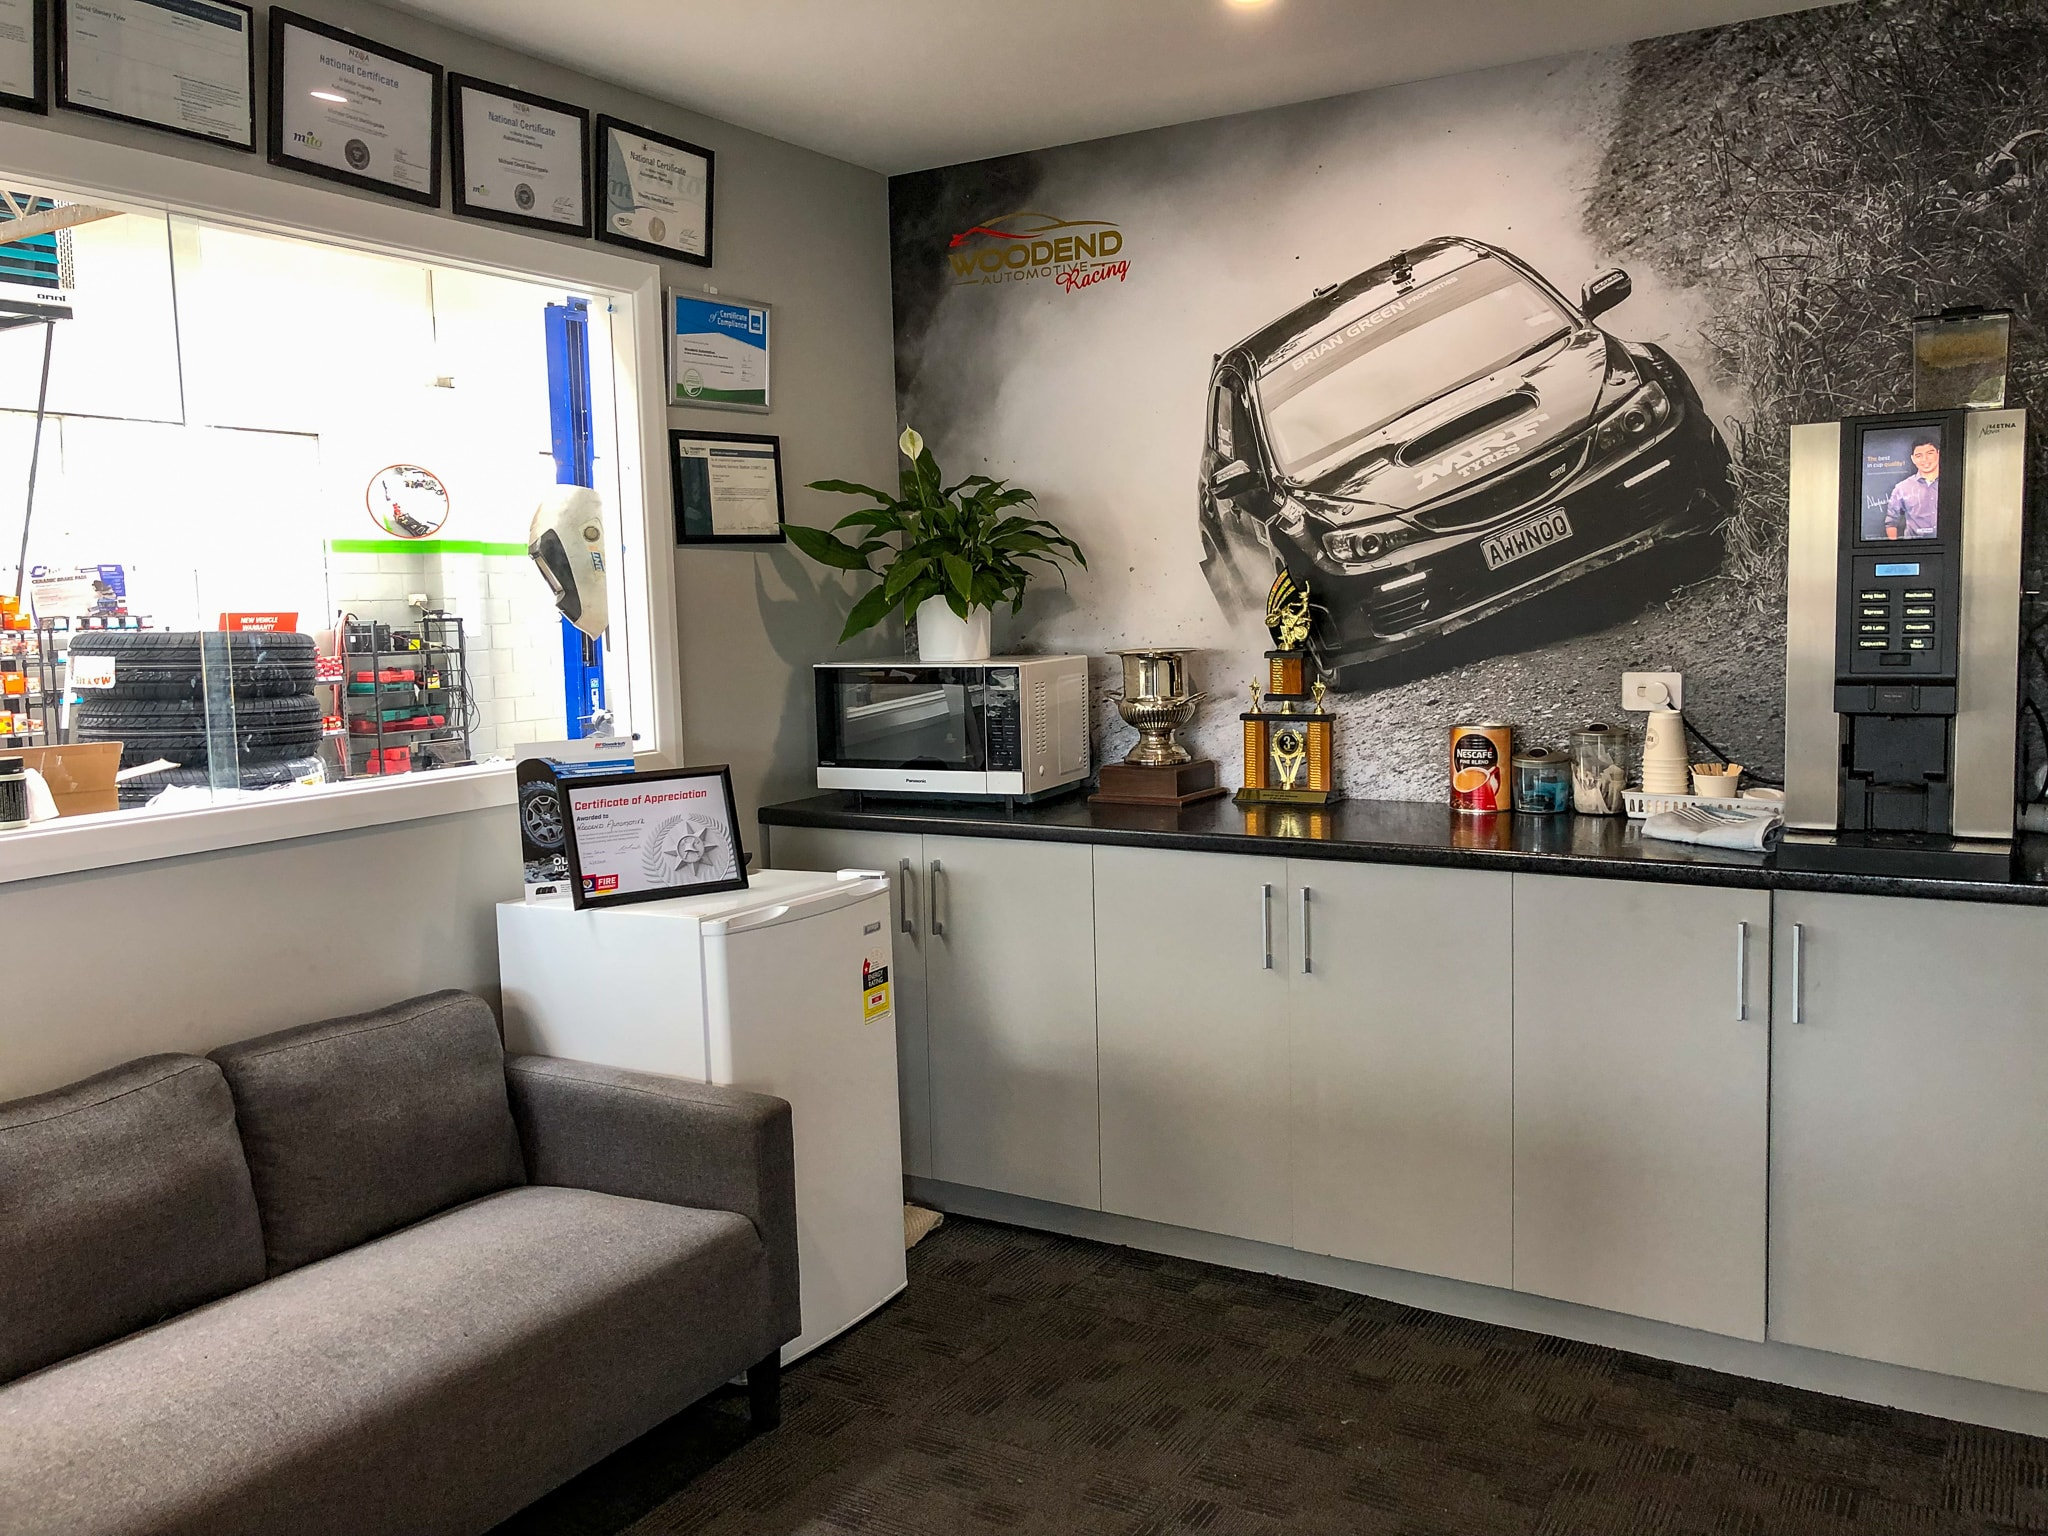 We offer coffee and TV while you wait for your vehicle to get a WOF / a service